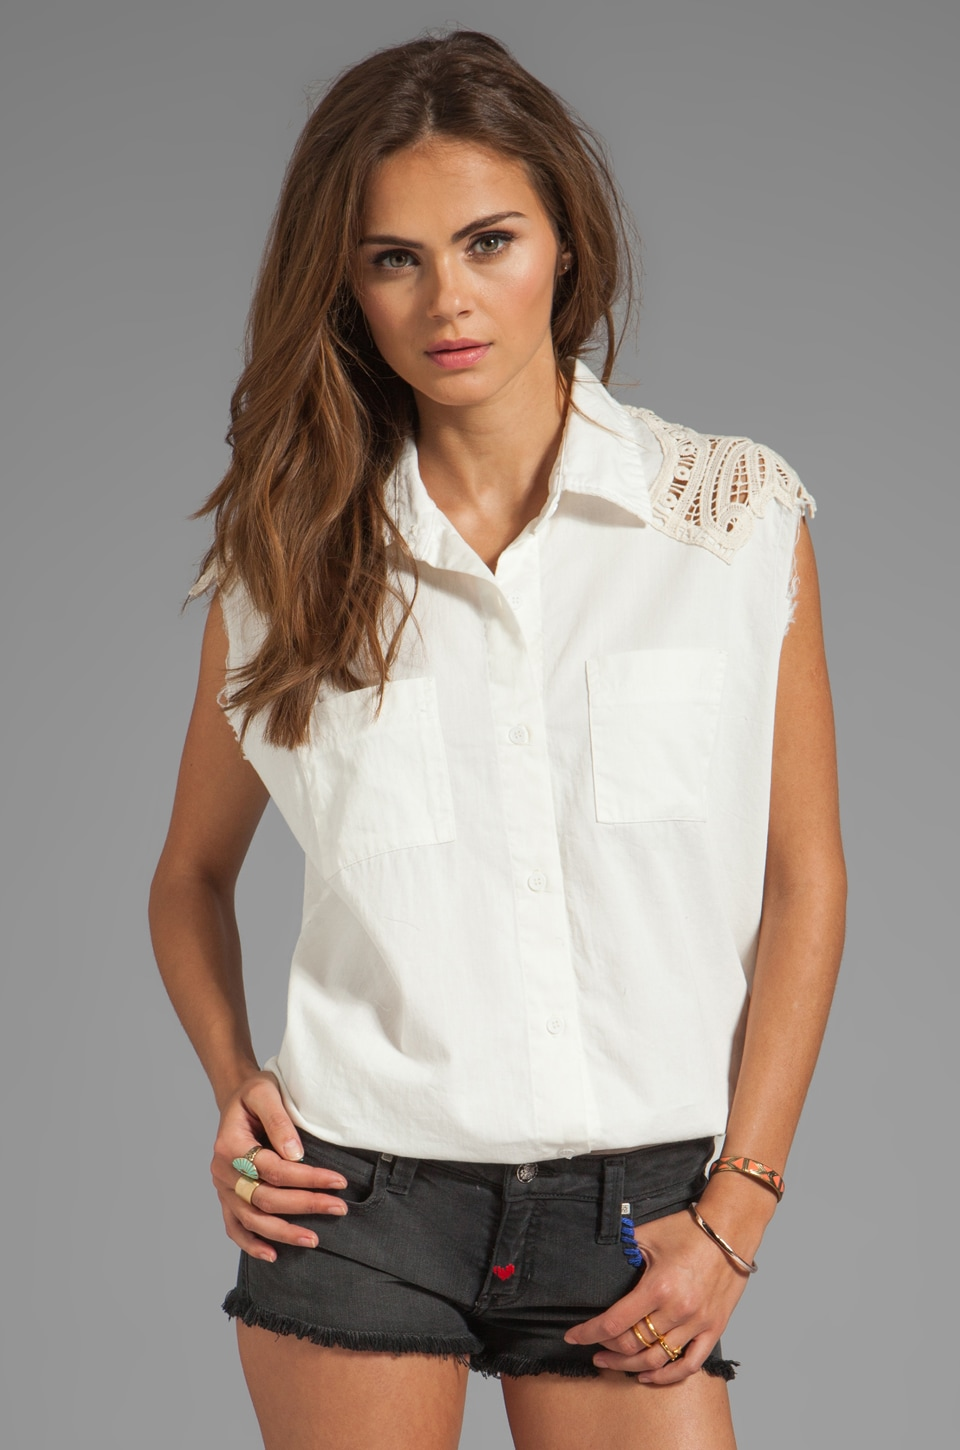 Jen's Pirate Booty Blessed Sleeveless Button Up in Worn White